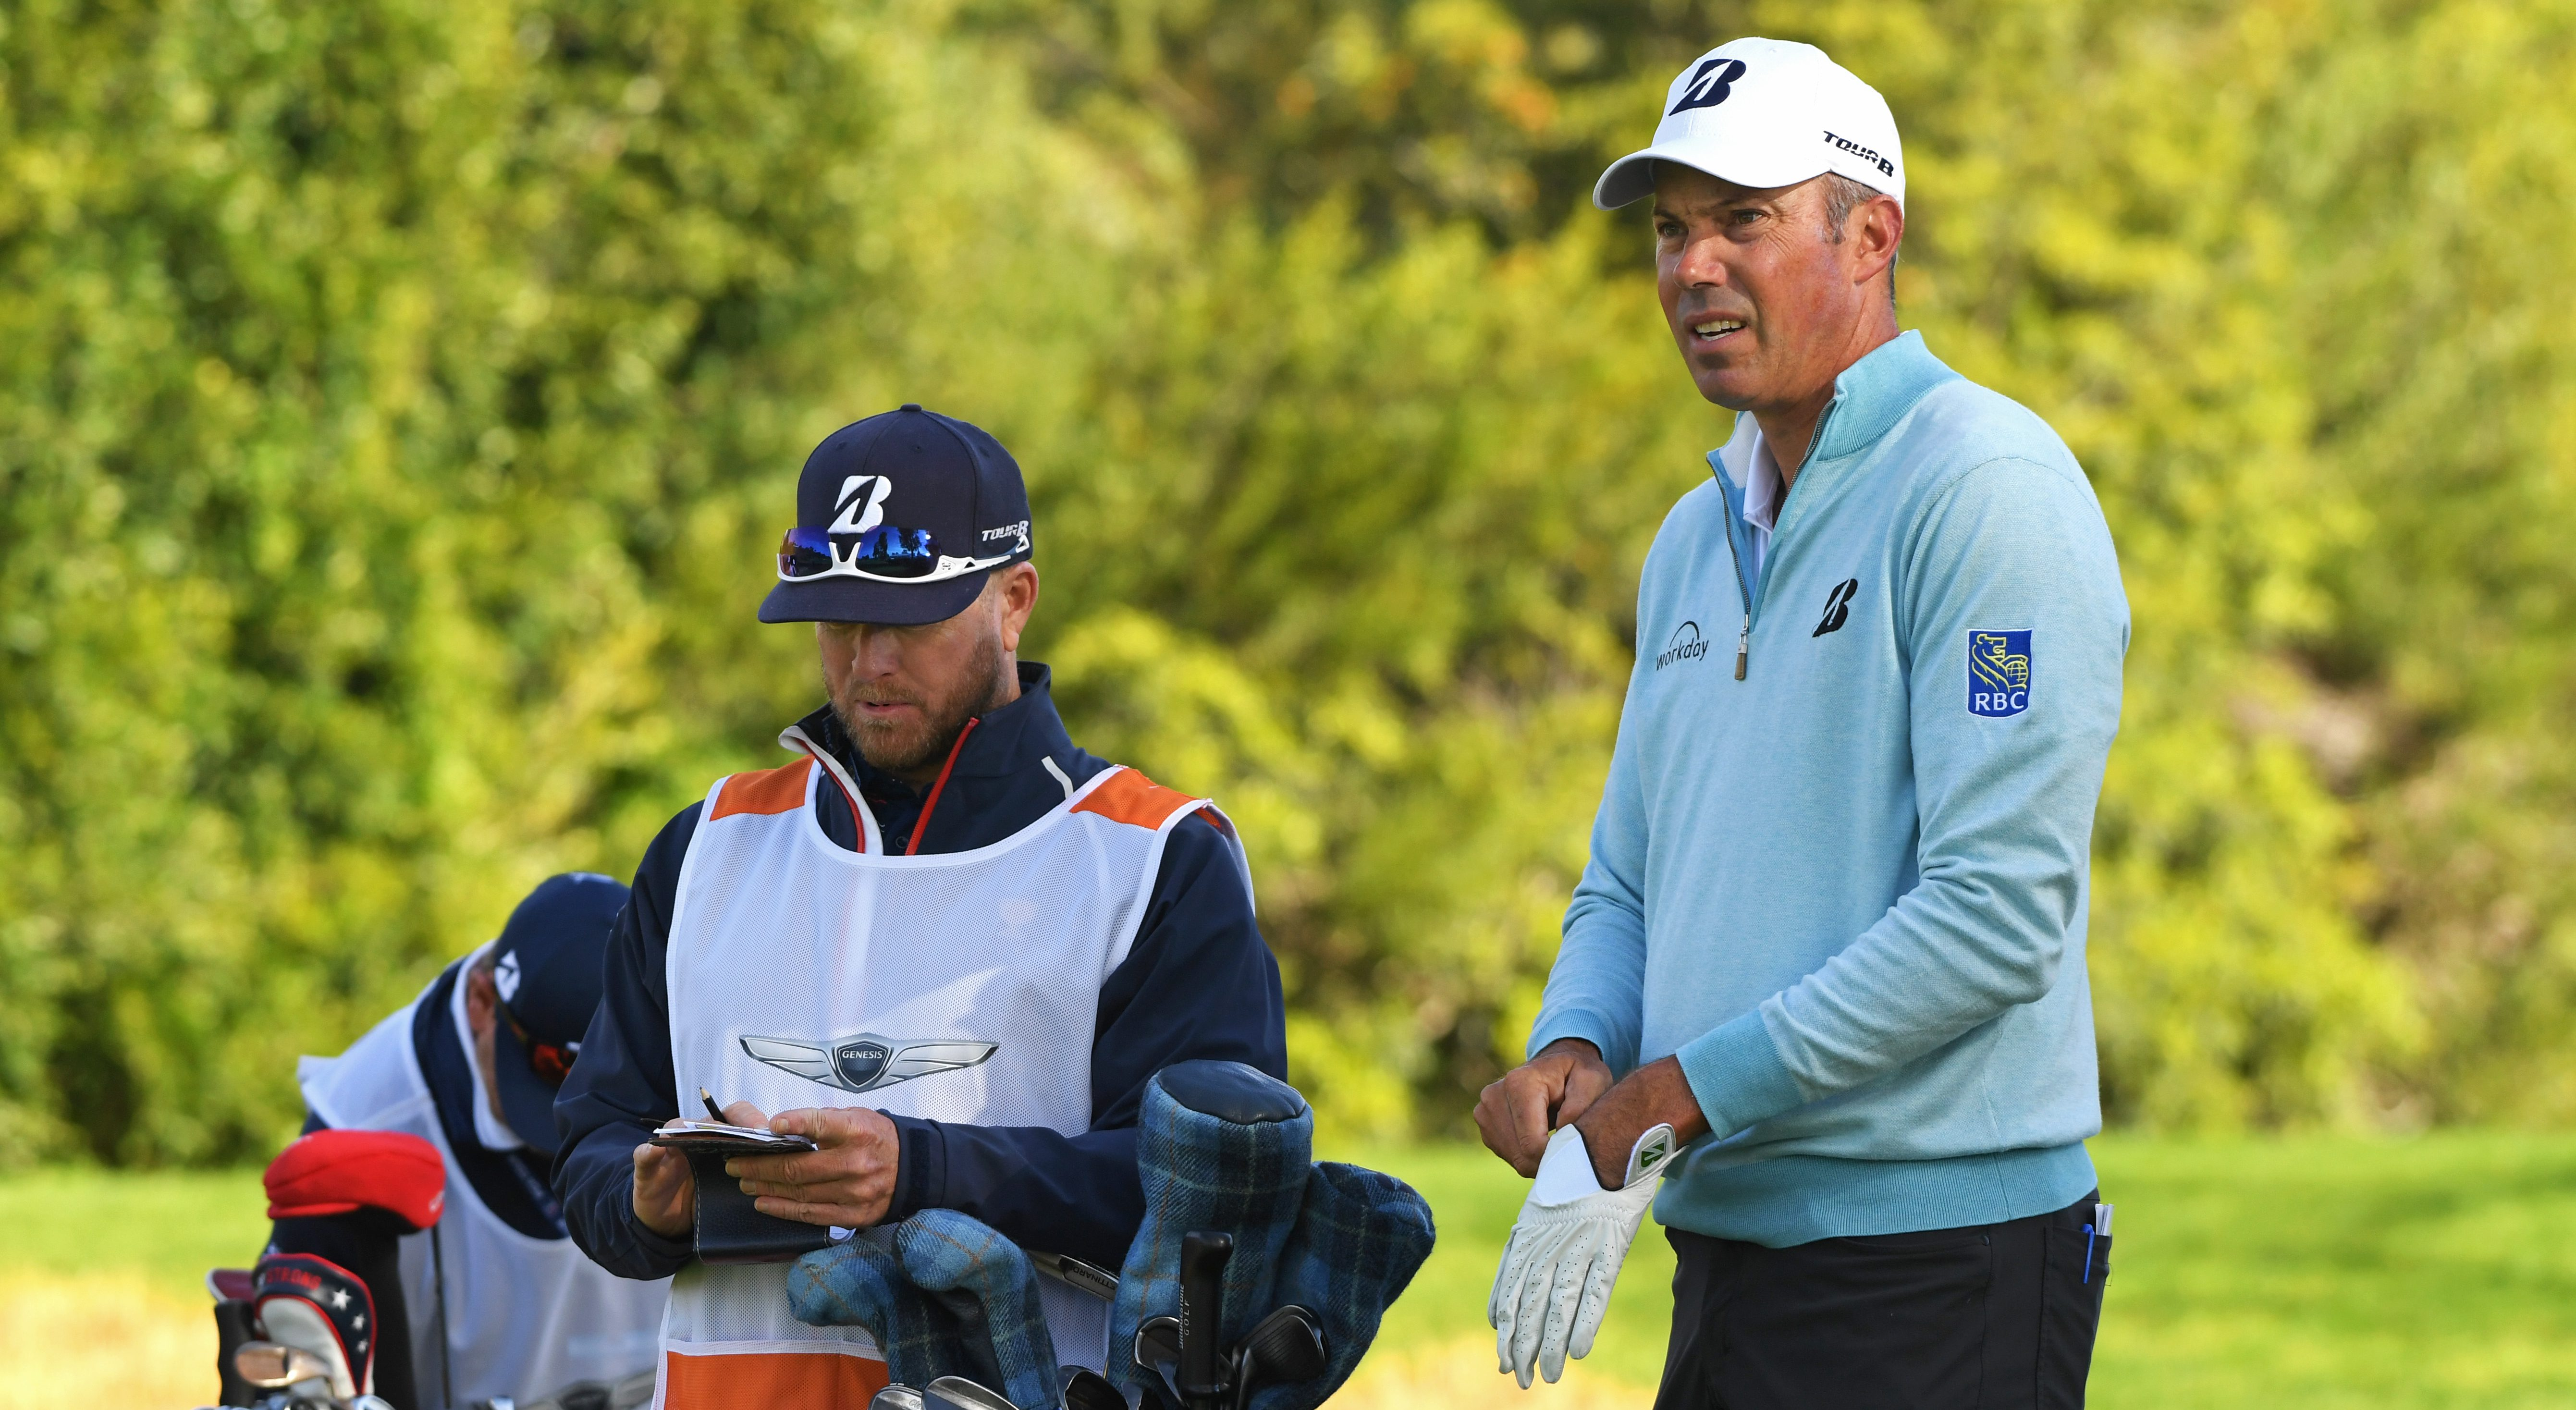 PACIFIC PALISADES, CALIFORNIA - FEBRUARY 15: Matt Kuchar waits to hit a tee shot on the 4th hole during the continuation of the first round of the Genesis Open at Riviera Country Club on February 15, 2019 in Pacific Palisades, California (Photo by Harry How/Getty Images)